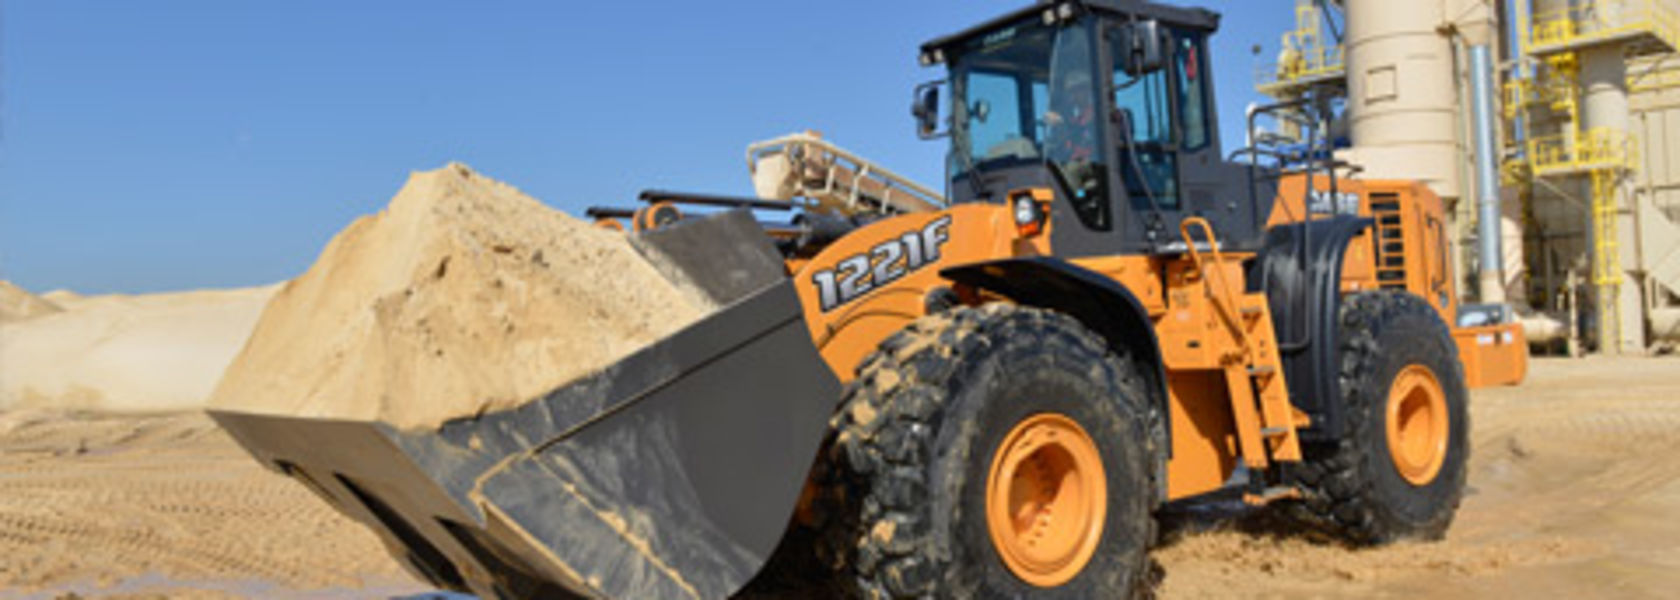 CASE introduces 1221F wheel loader